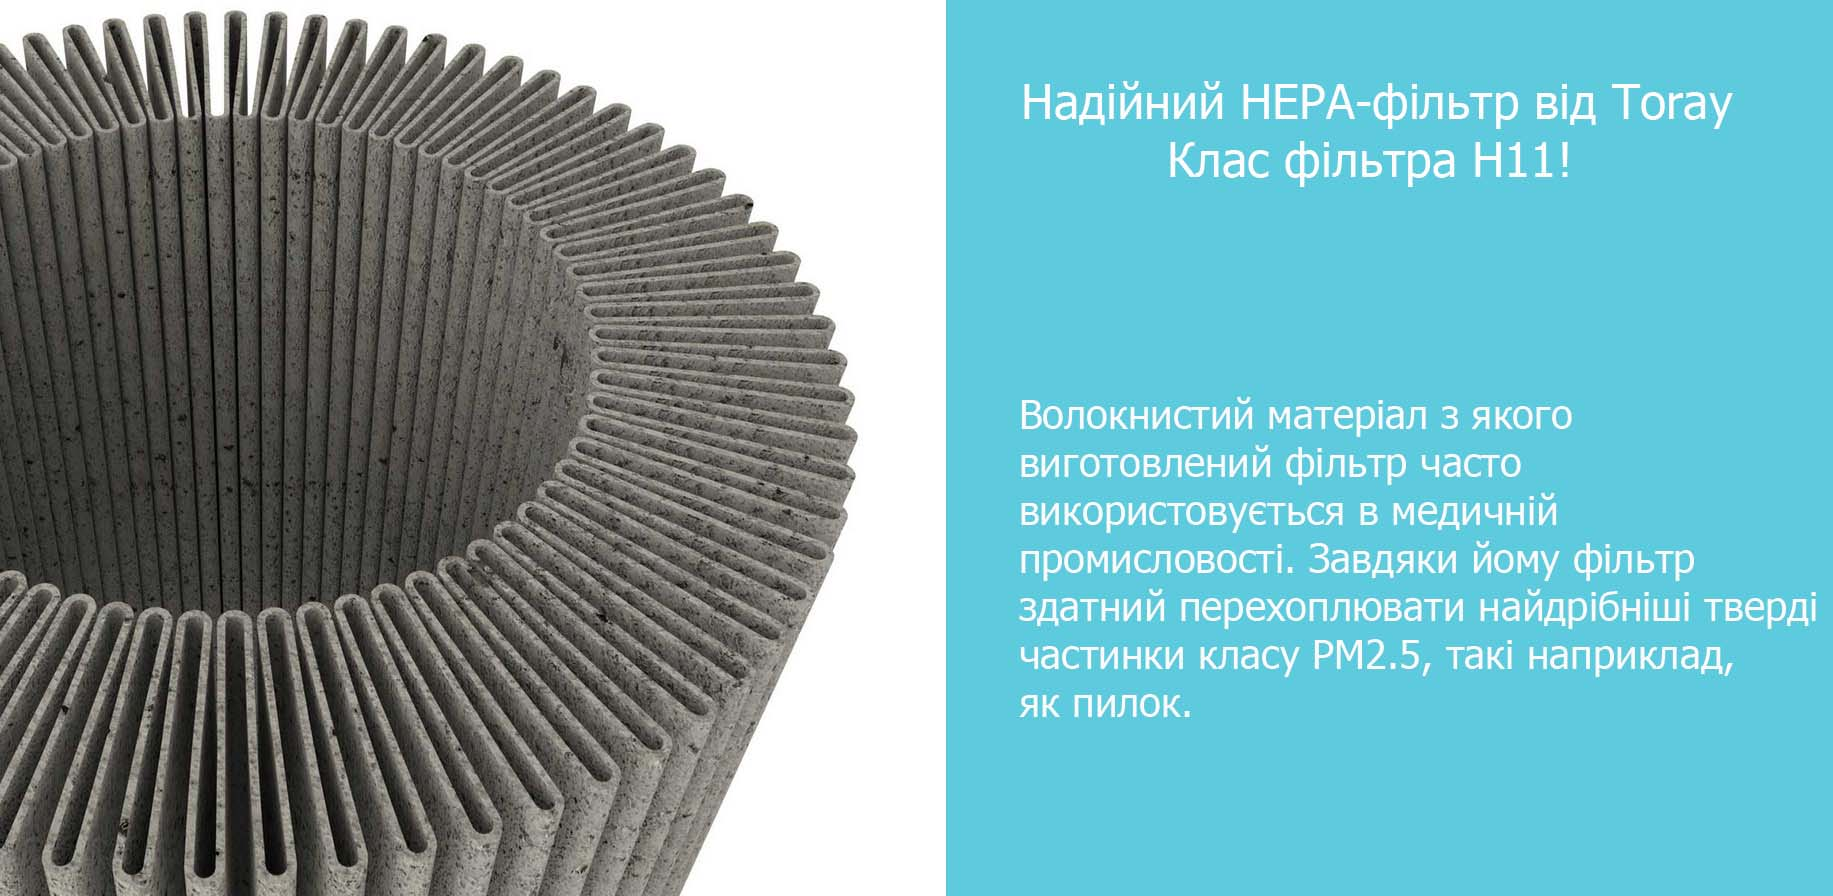 Mi Car Air Purifier Black HEPA матеріал